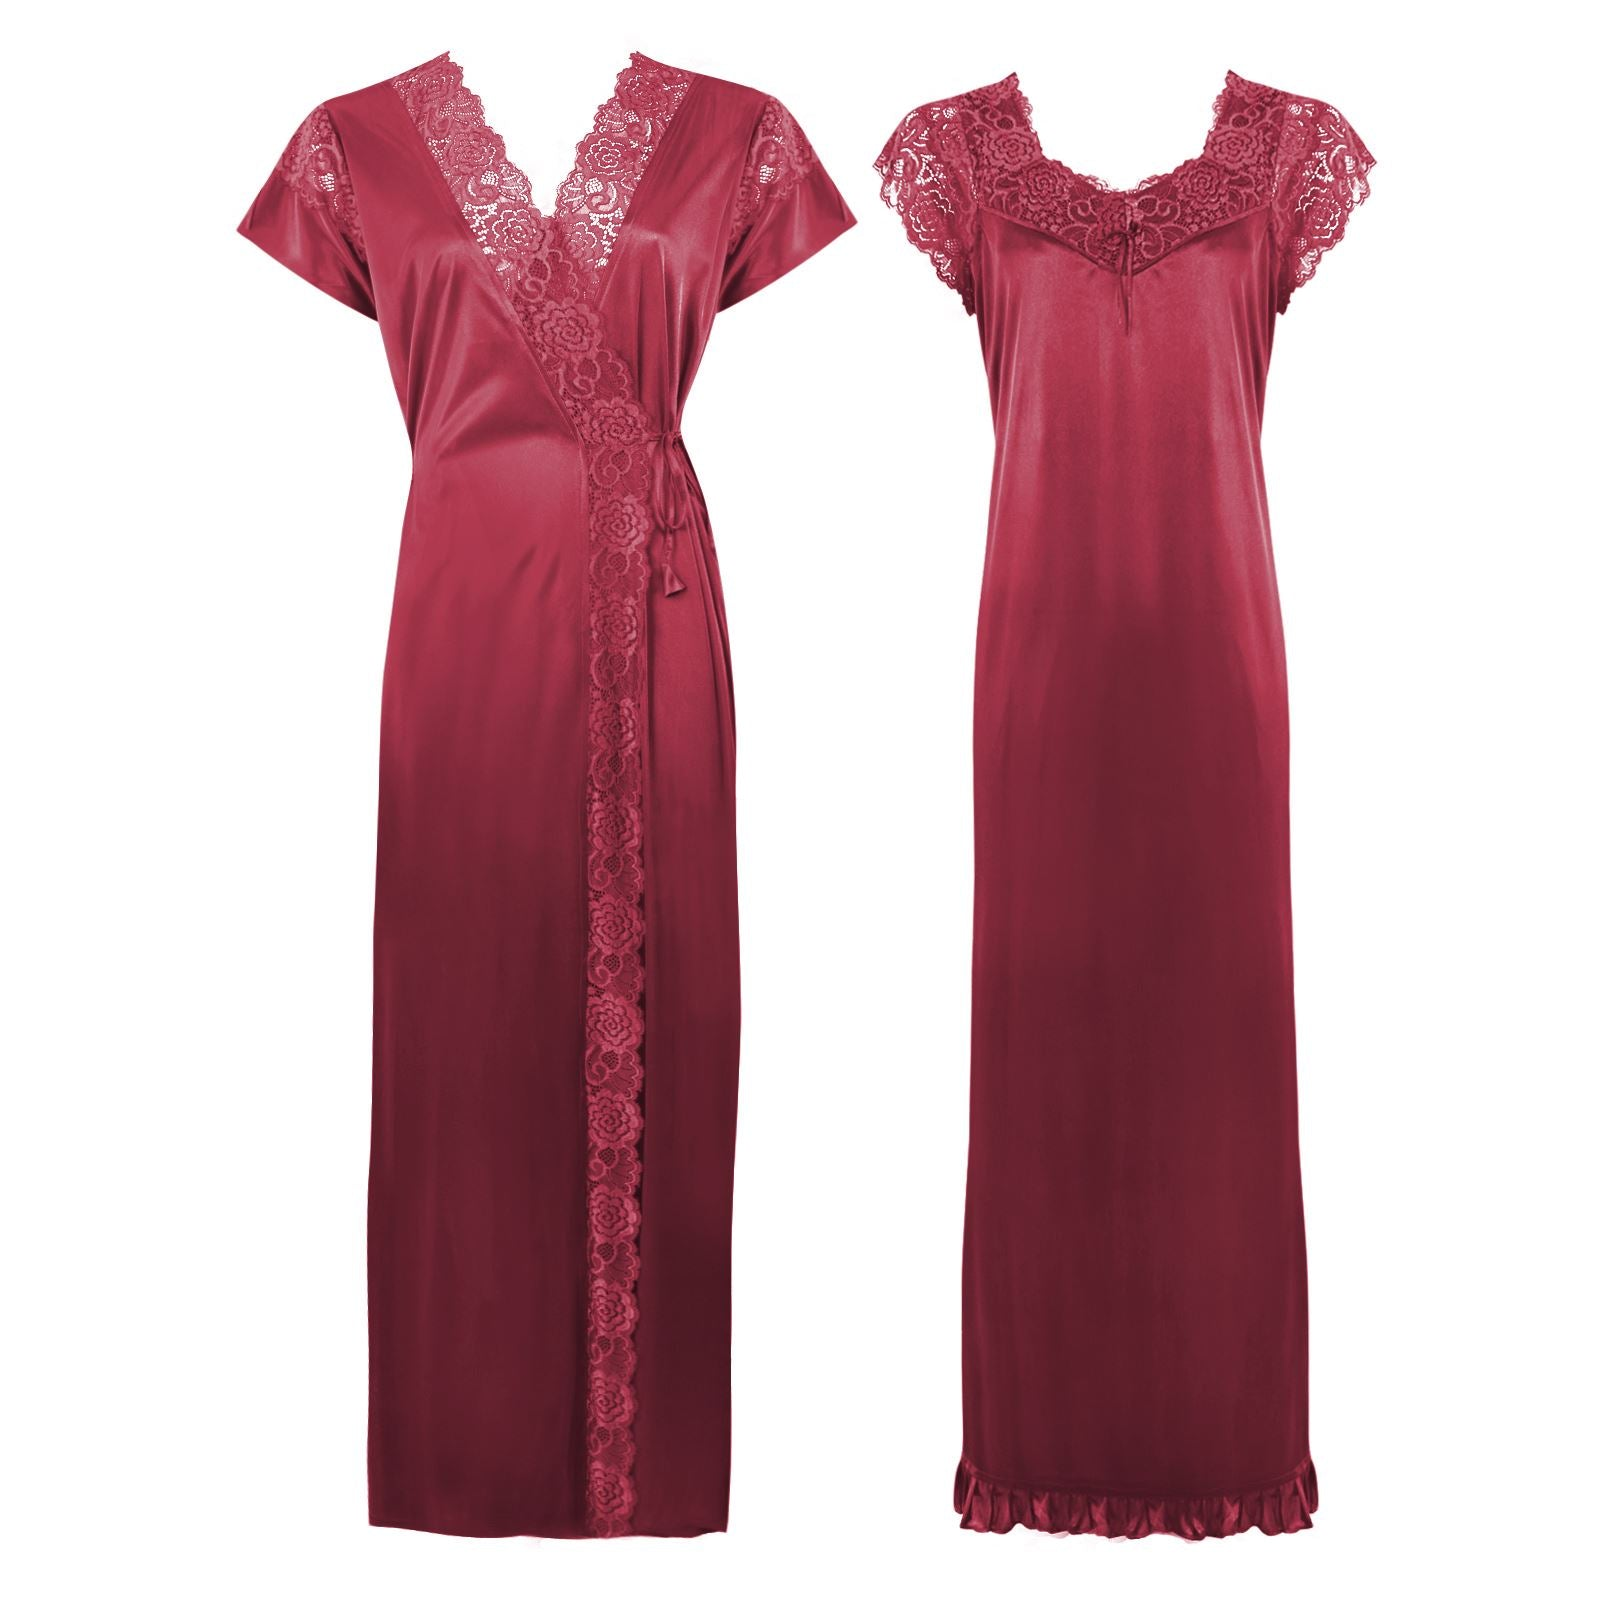 Color: Wine 2 Pc Satin Lace Nighty and Robe Size: One Size: Regular (8-14)